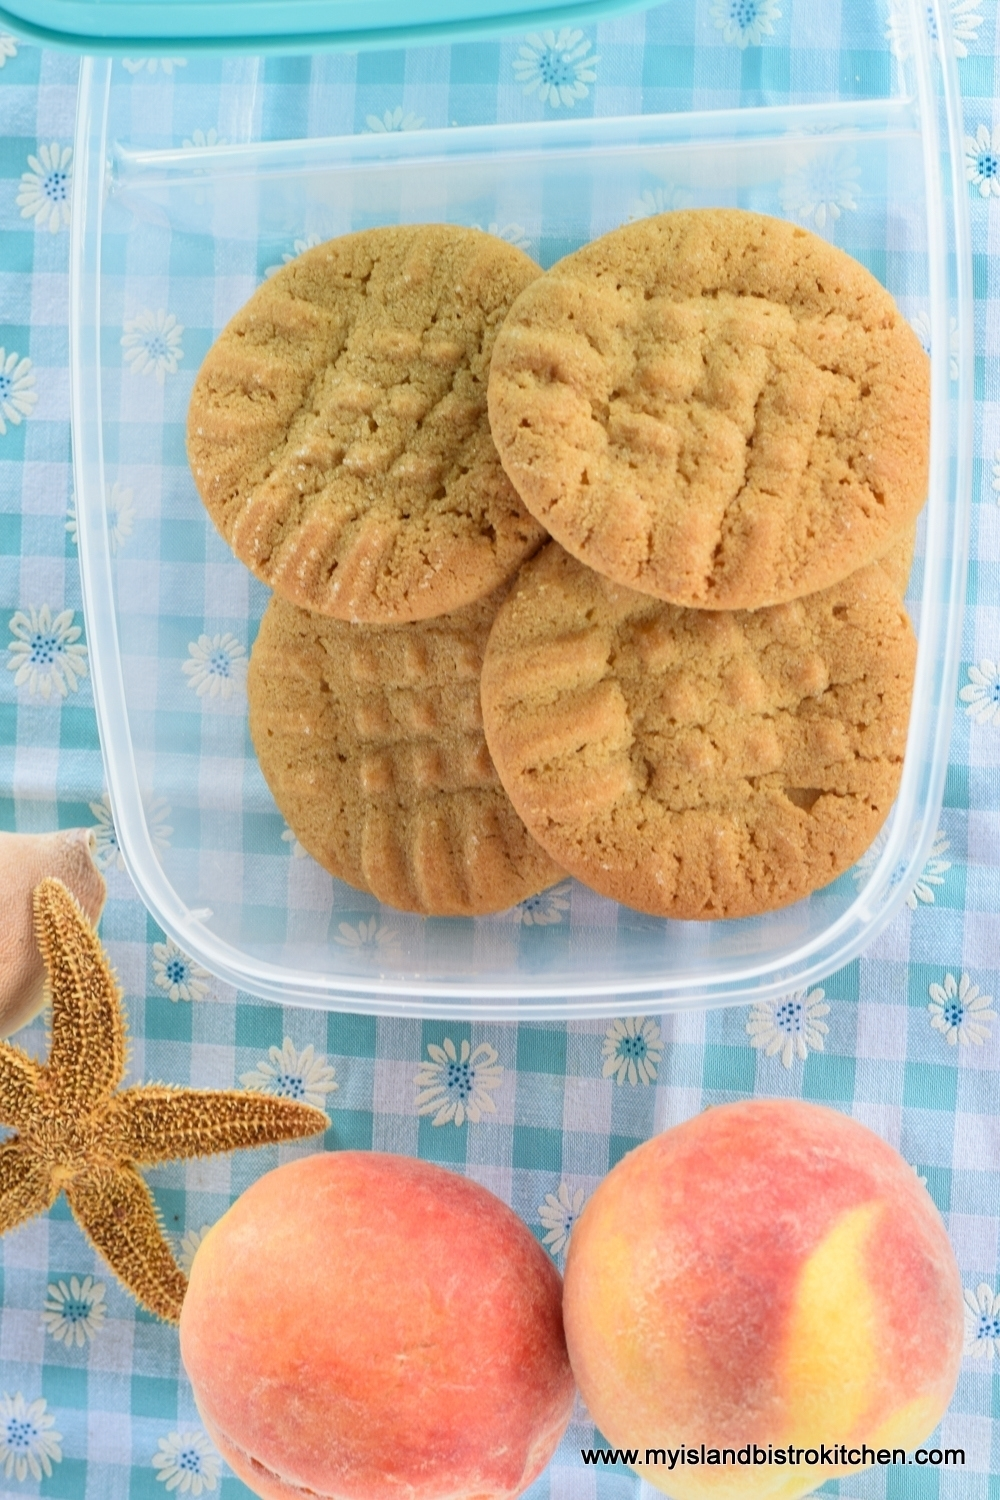 Peaches and Cookies